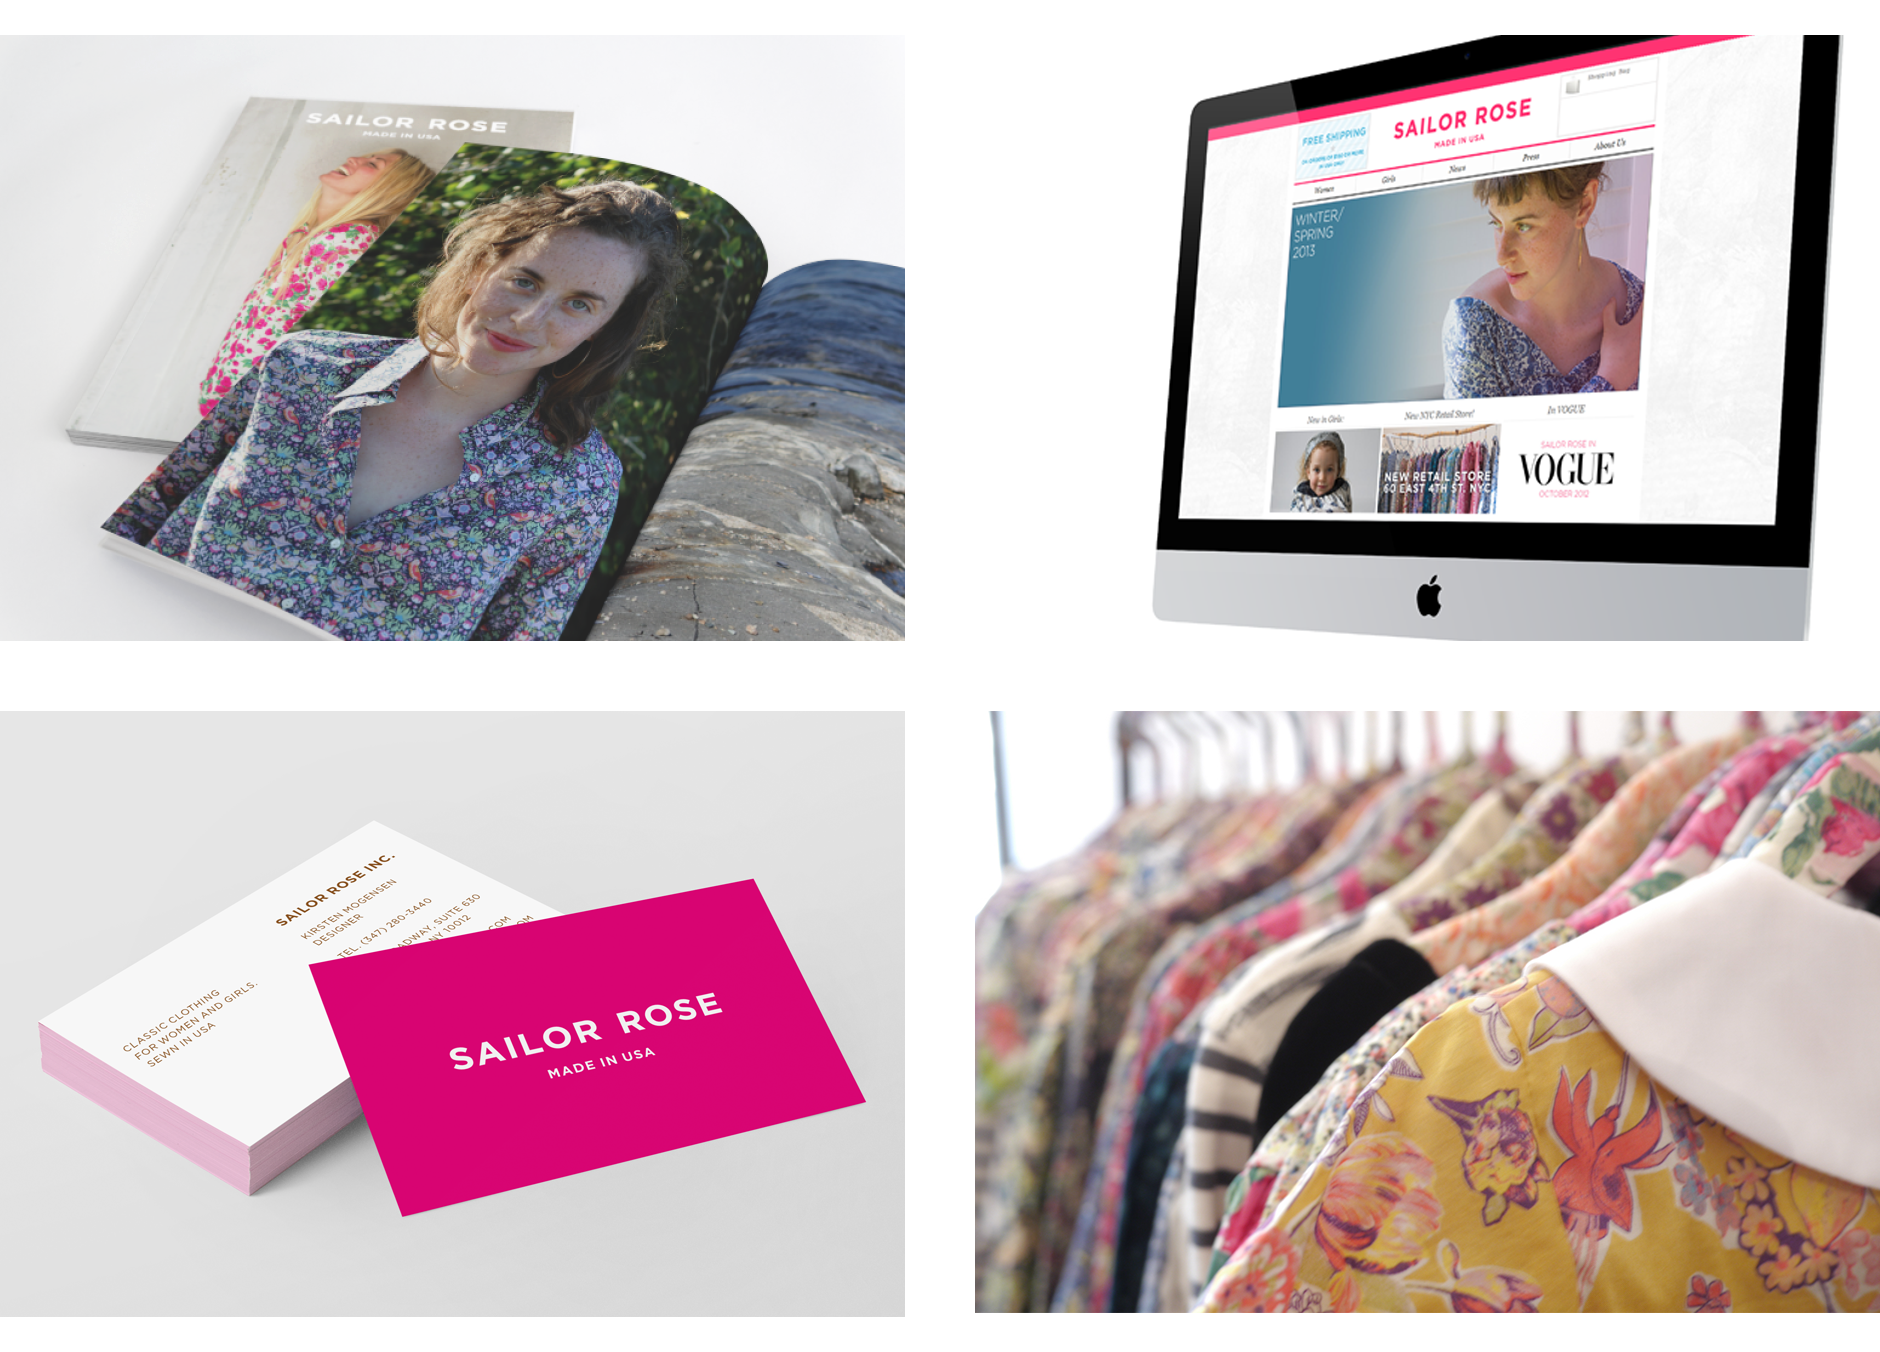 sailorrose website design